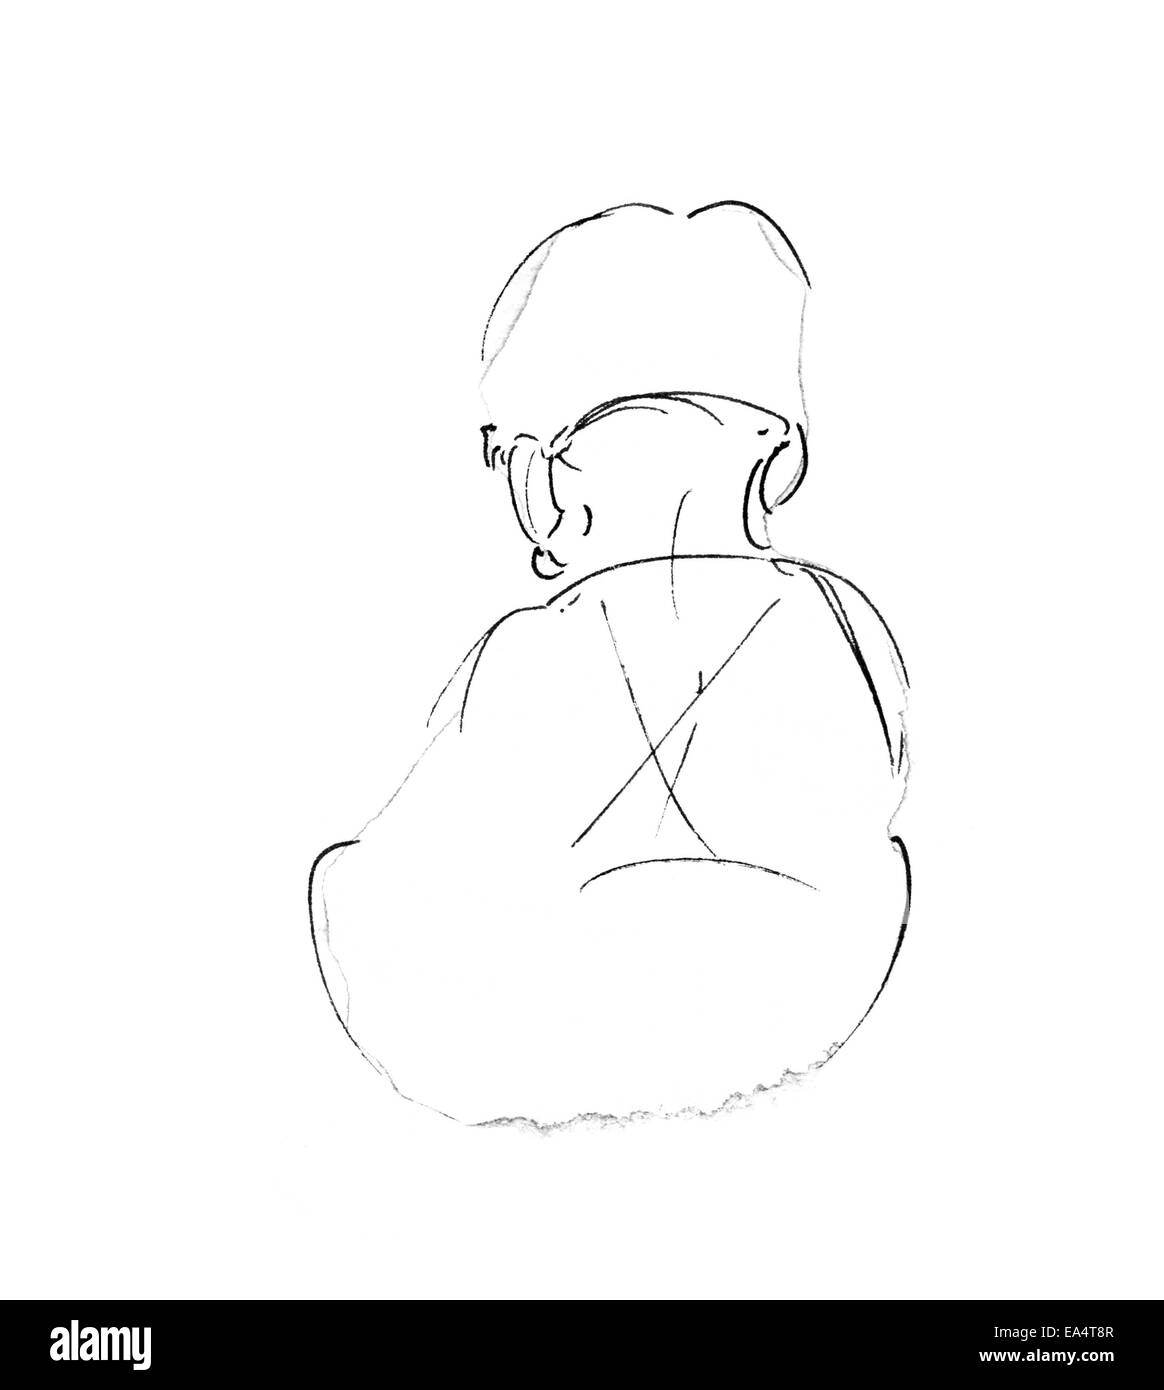 Toddler back original pencil sketch of two year old boy sitting from behind